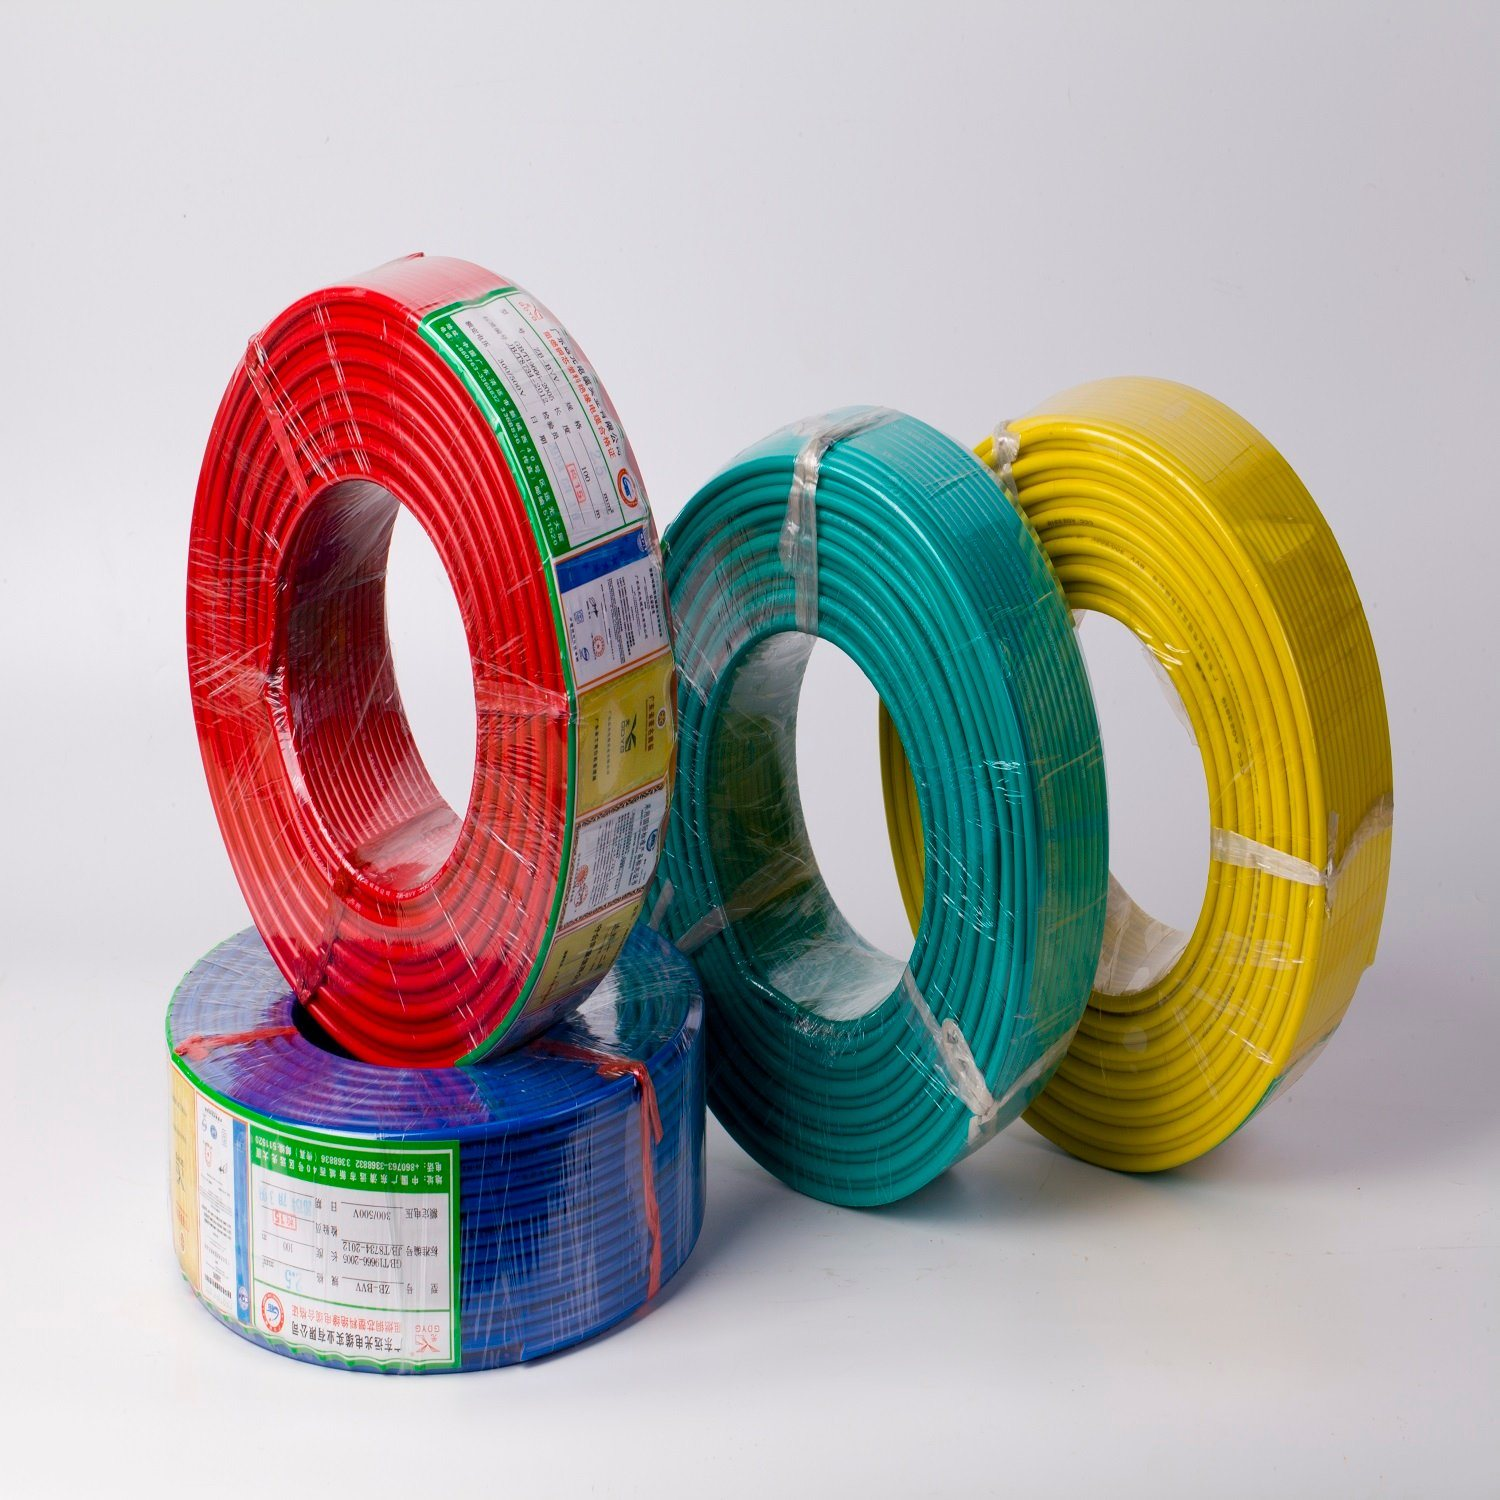 [DIAGRAM_3US]  China Power Cable Wires Low Voltage 2.5sqmm Electrical Wire Cable for House  Wiring Building Wire - China Electric Cable, Copper Cable | Cable Wiring For A House |  | Guangdong Vango Cable Industry Co., Ltd.